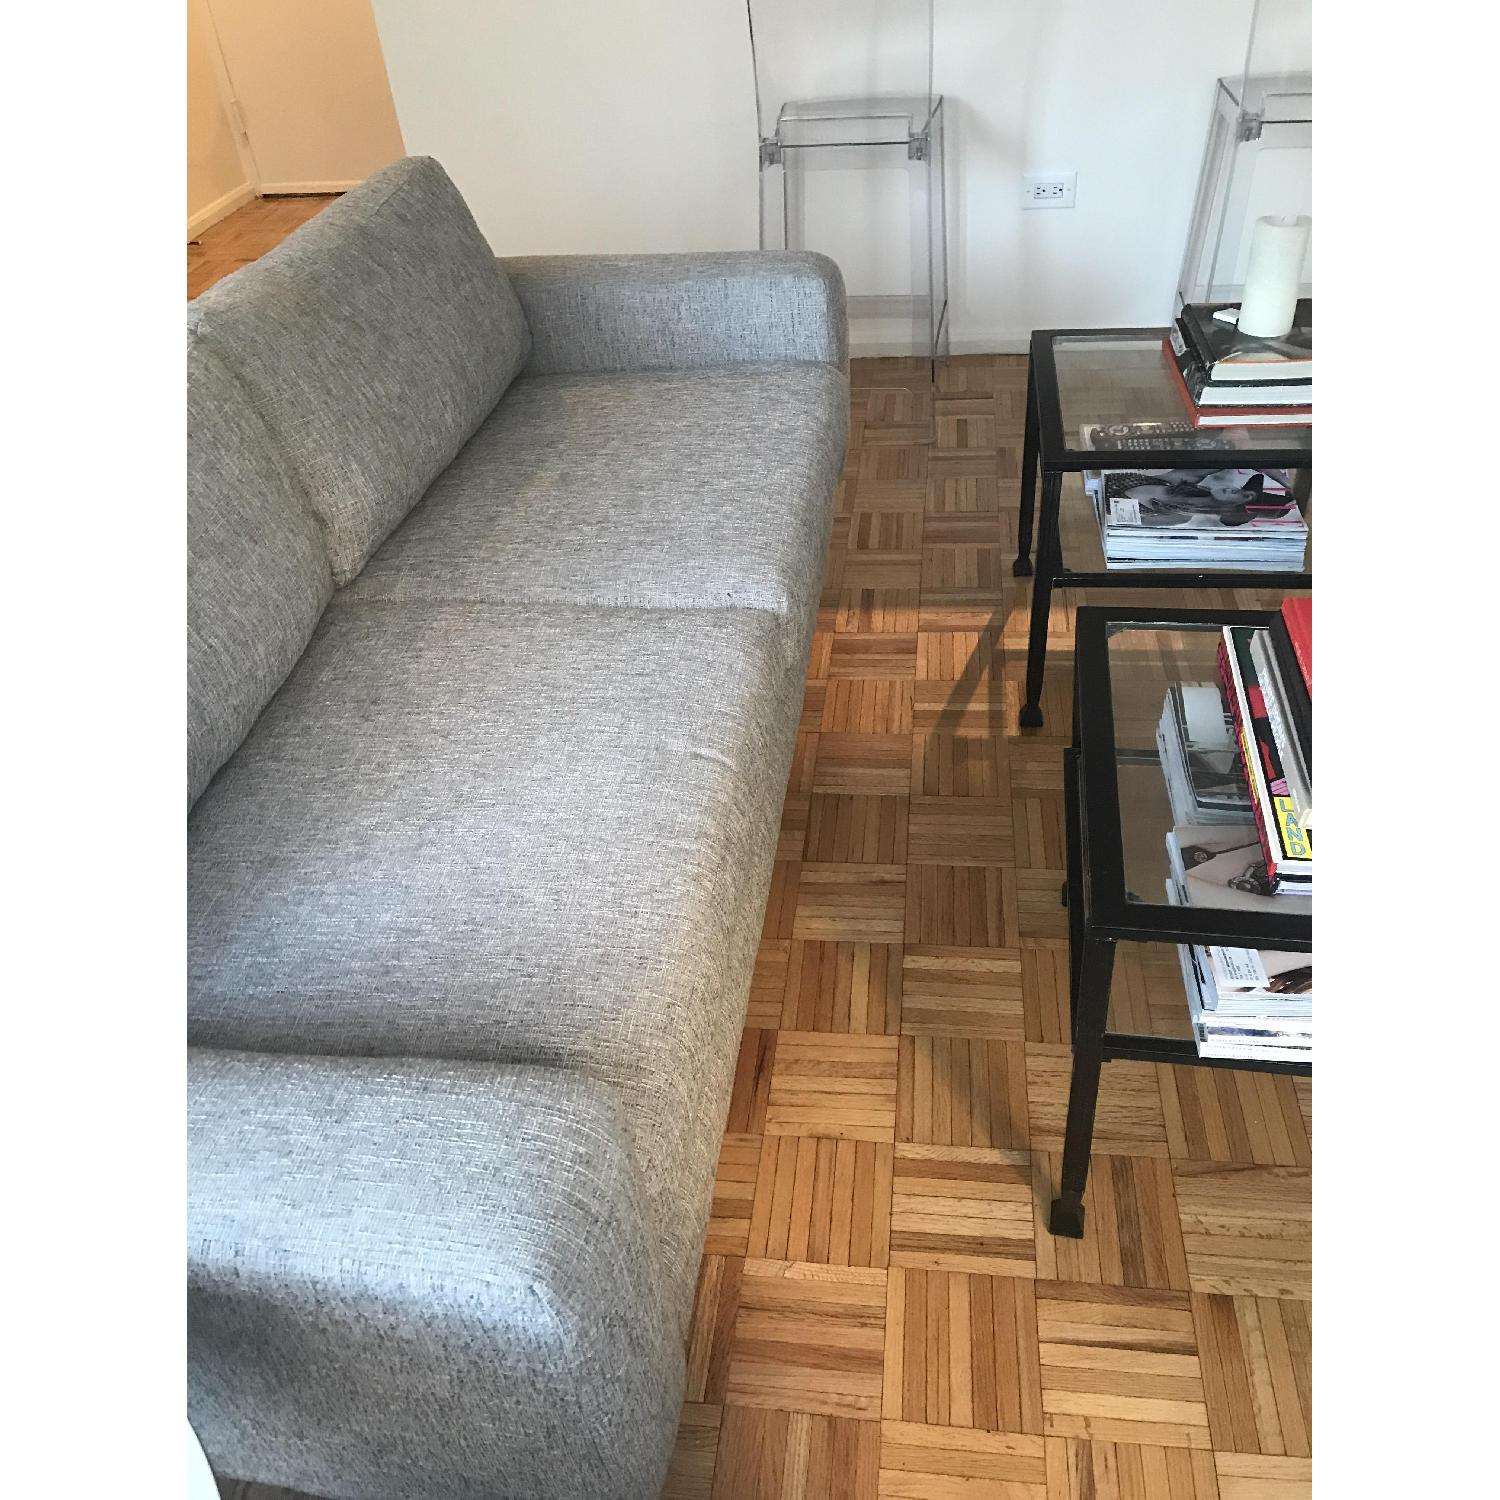 West Elm Eddy Loveseat in Deco Weave Heathered Grey